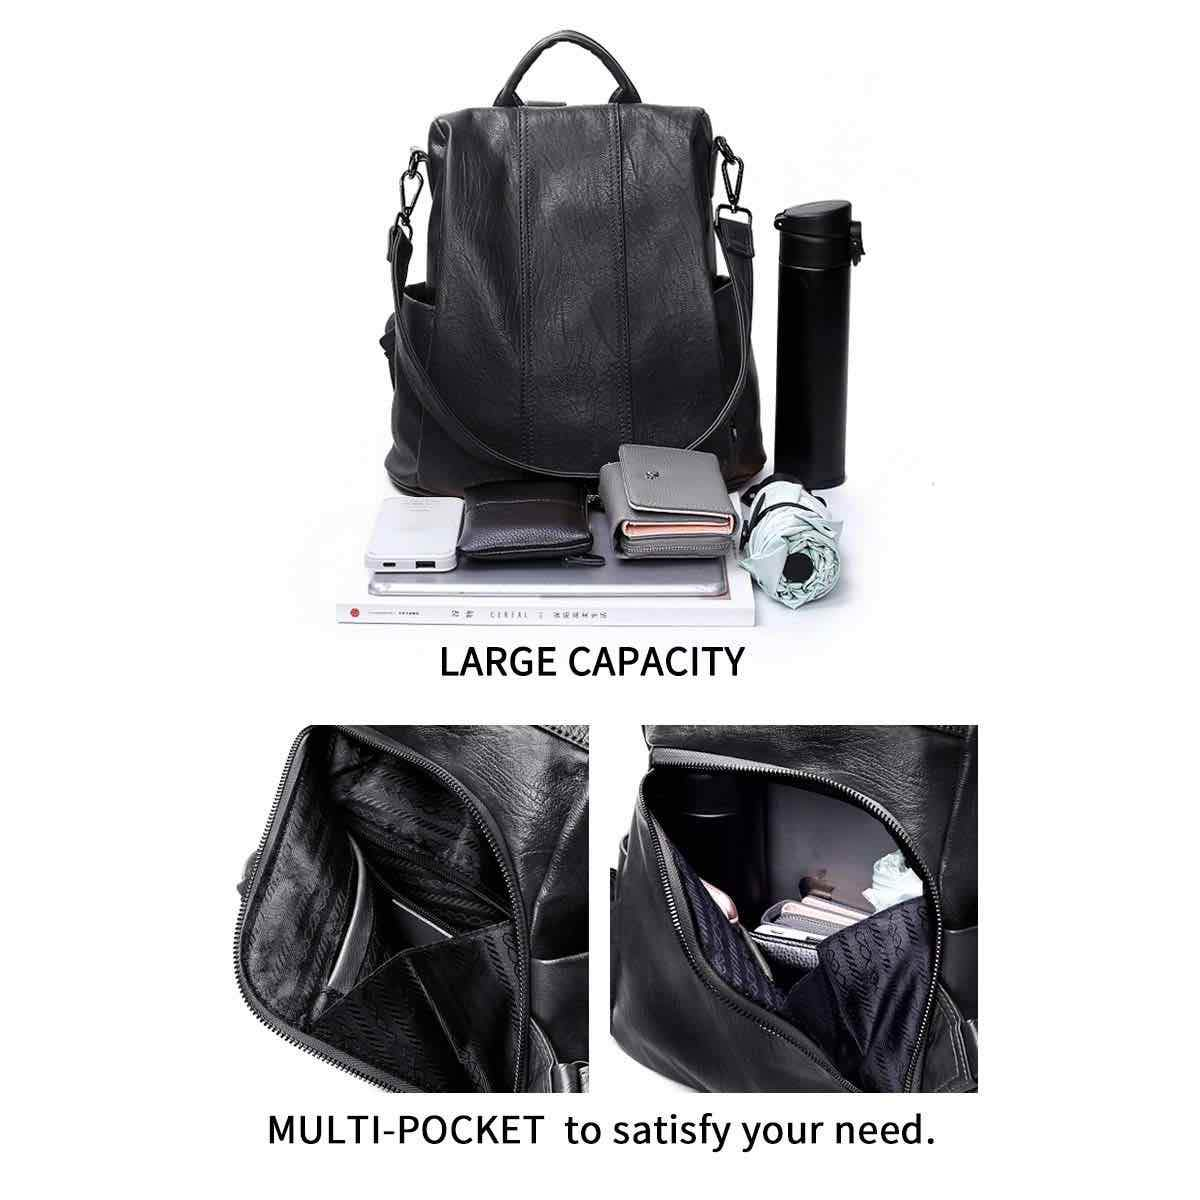 Aline™ Anti-Theft Backpack-Shoulder Bag with Extra Large Capacity